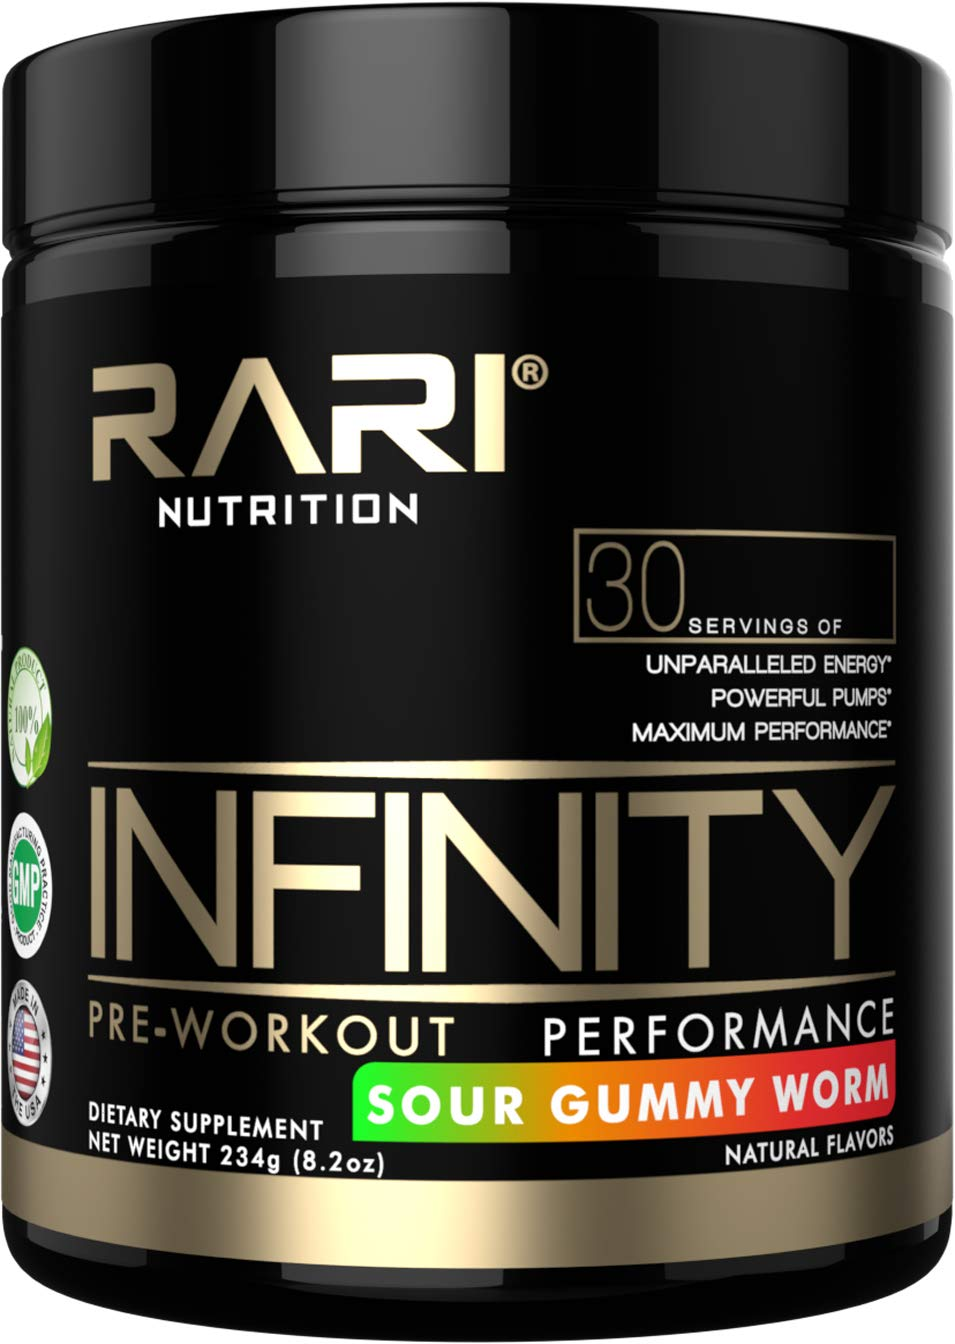 RARI Nutrition - Infinity - 100% Natural Pre Workout Powder for Energy, Focus, and Performance - Vegan and Keto Friendly - No Creatine - No Artificial Ingredients - 30 Servings (Sour Gummy Worm)